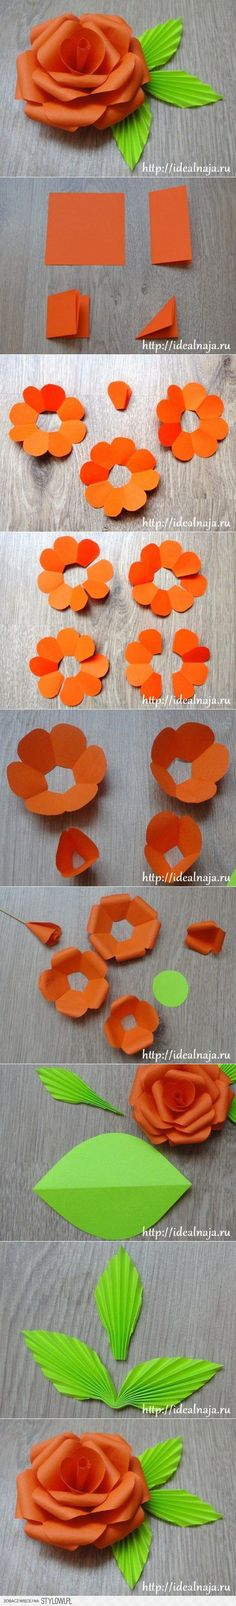 Mar 2019 - Paper flowers - tutorials and inspiration. See more ideas about Paper flowers, Flower crafts and Diy flowers. Paper Flower Tutorial, Paper Flowers Diy, Handmade Flowers, Flower Crafts, Diy Paper, Fabric Flowers, Paper Crafting, Flower Diy, Rose Tutorial